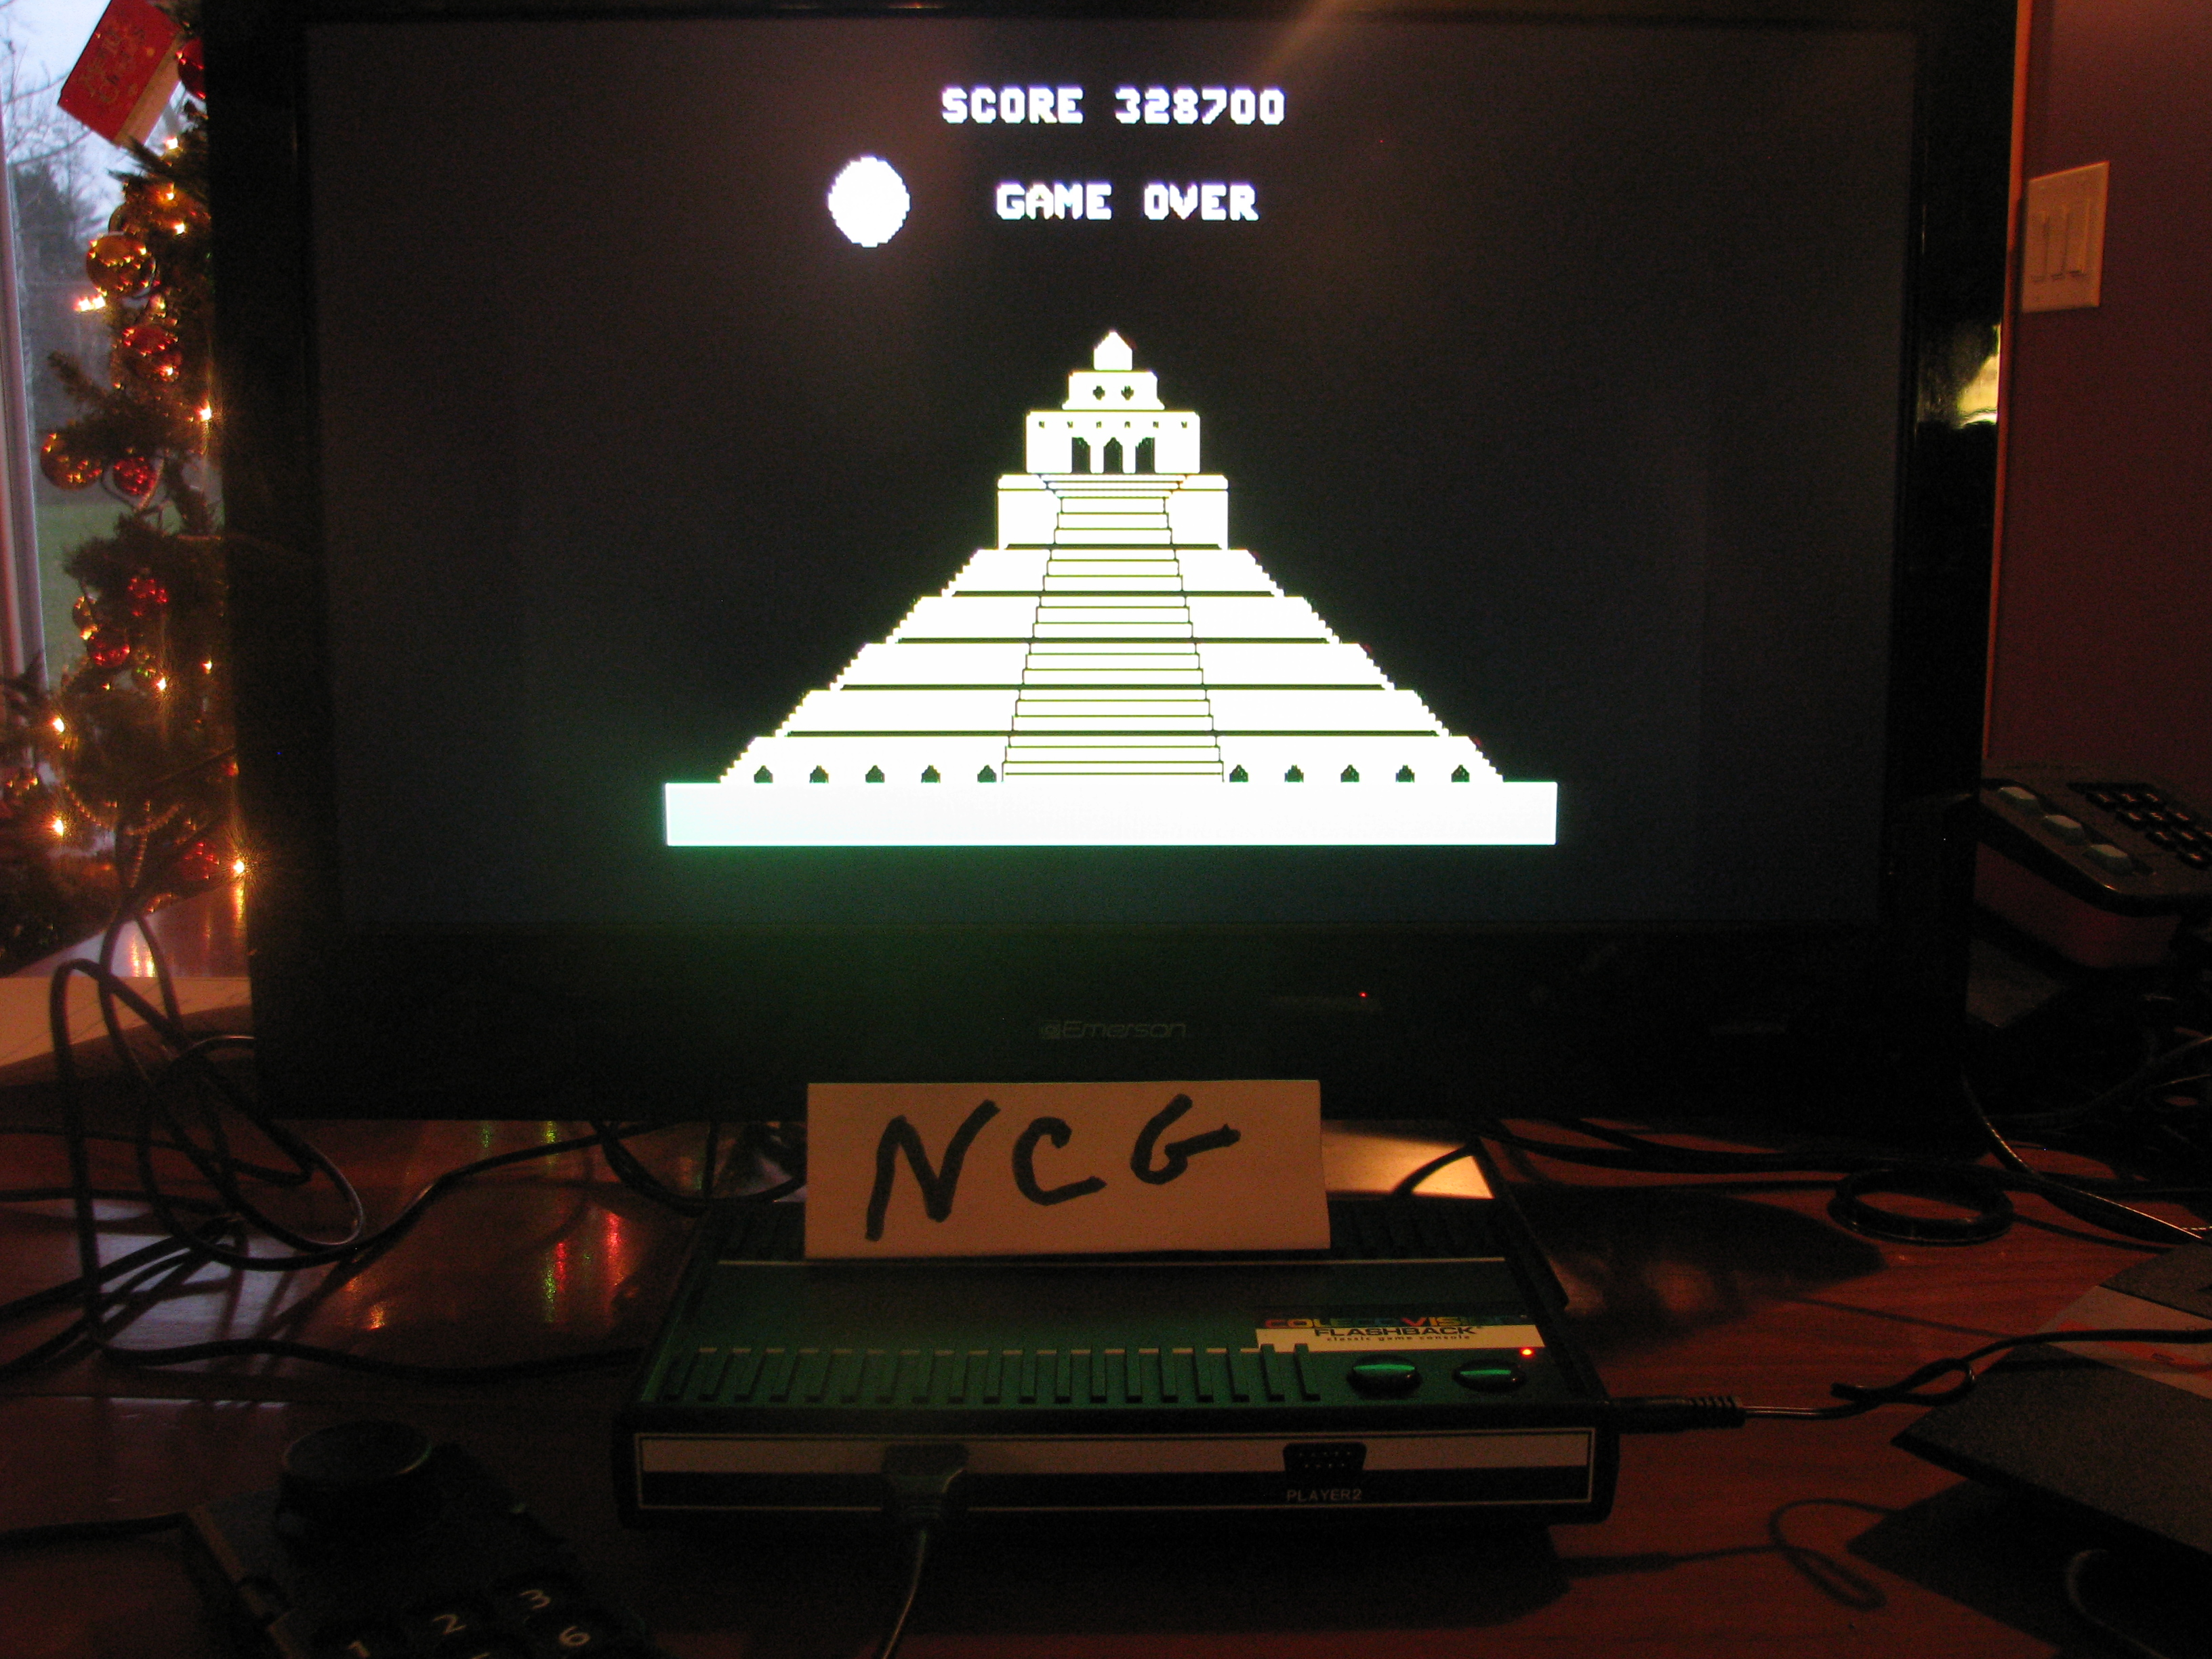 NorthCoastGamer: Quest for Quintana Roo (Colecovision Flashback) 328,700 points on 2014-12-20 23:17:52